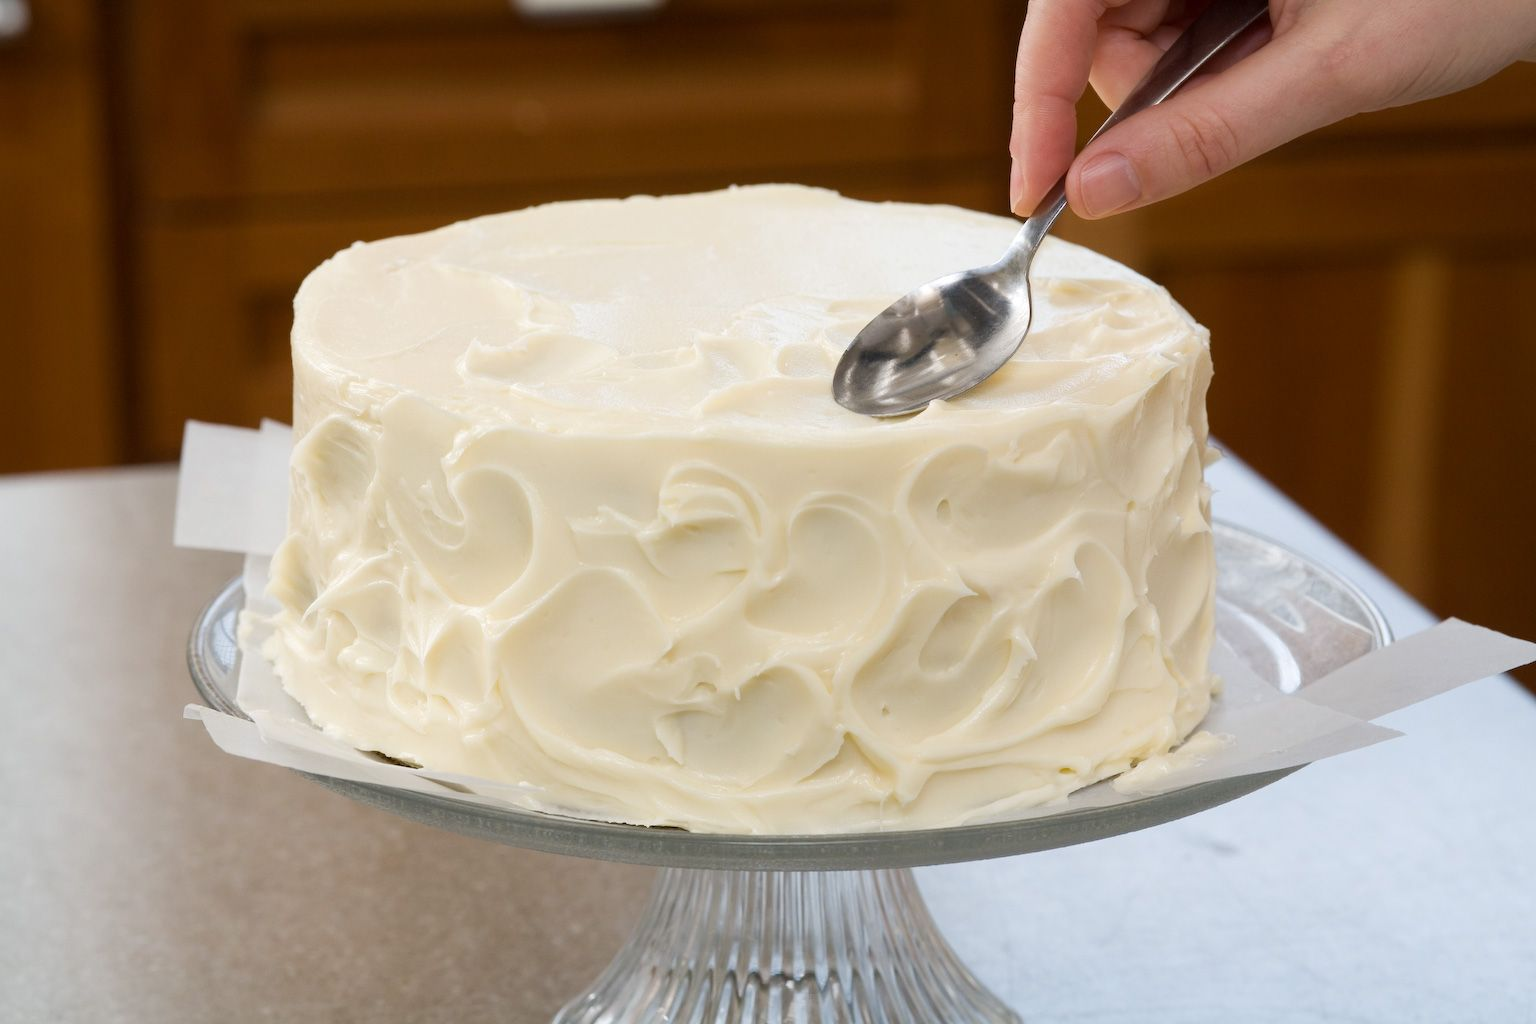 Secrets To Decorating Layer Cakes. Some Really Good Ideas For Making  Professional Looking Cakes That Are Easy To Do At Home!